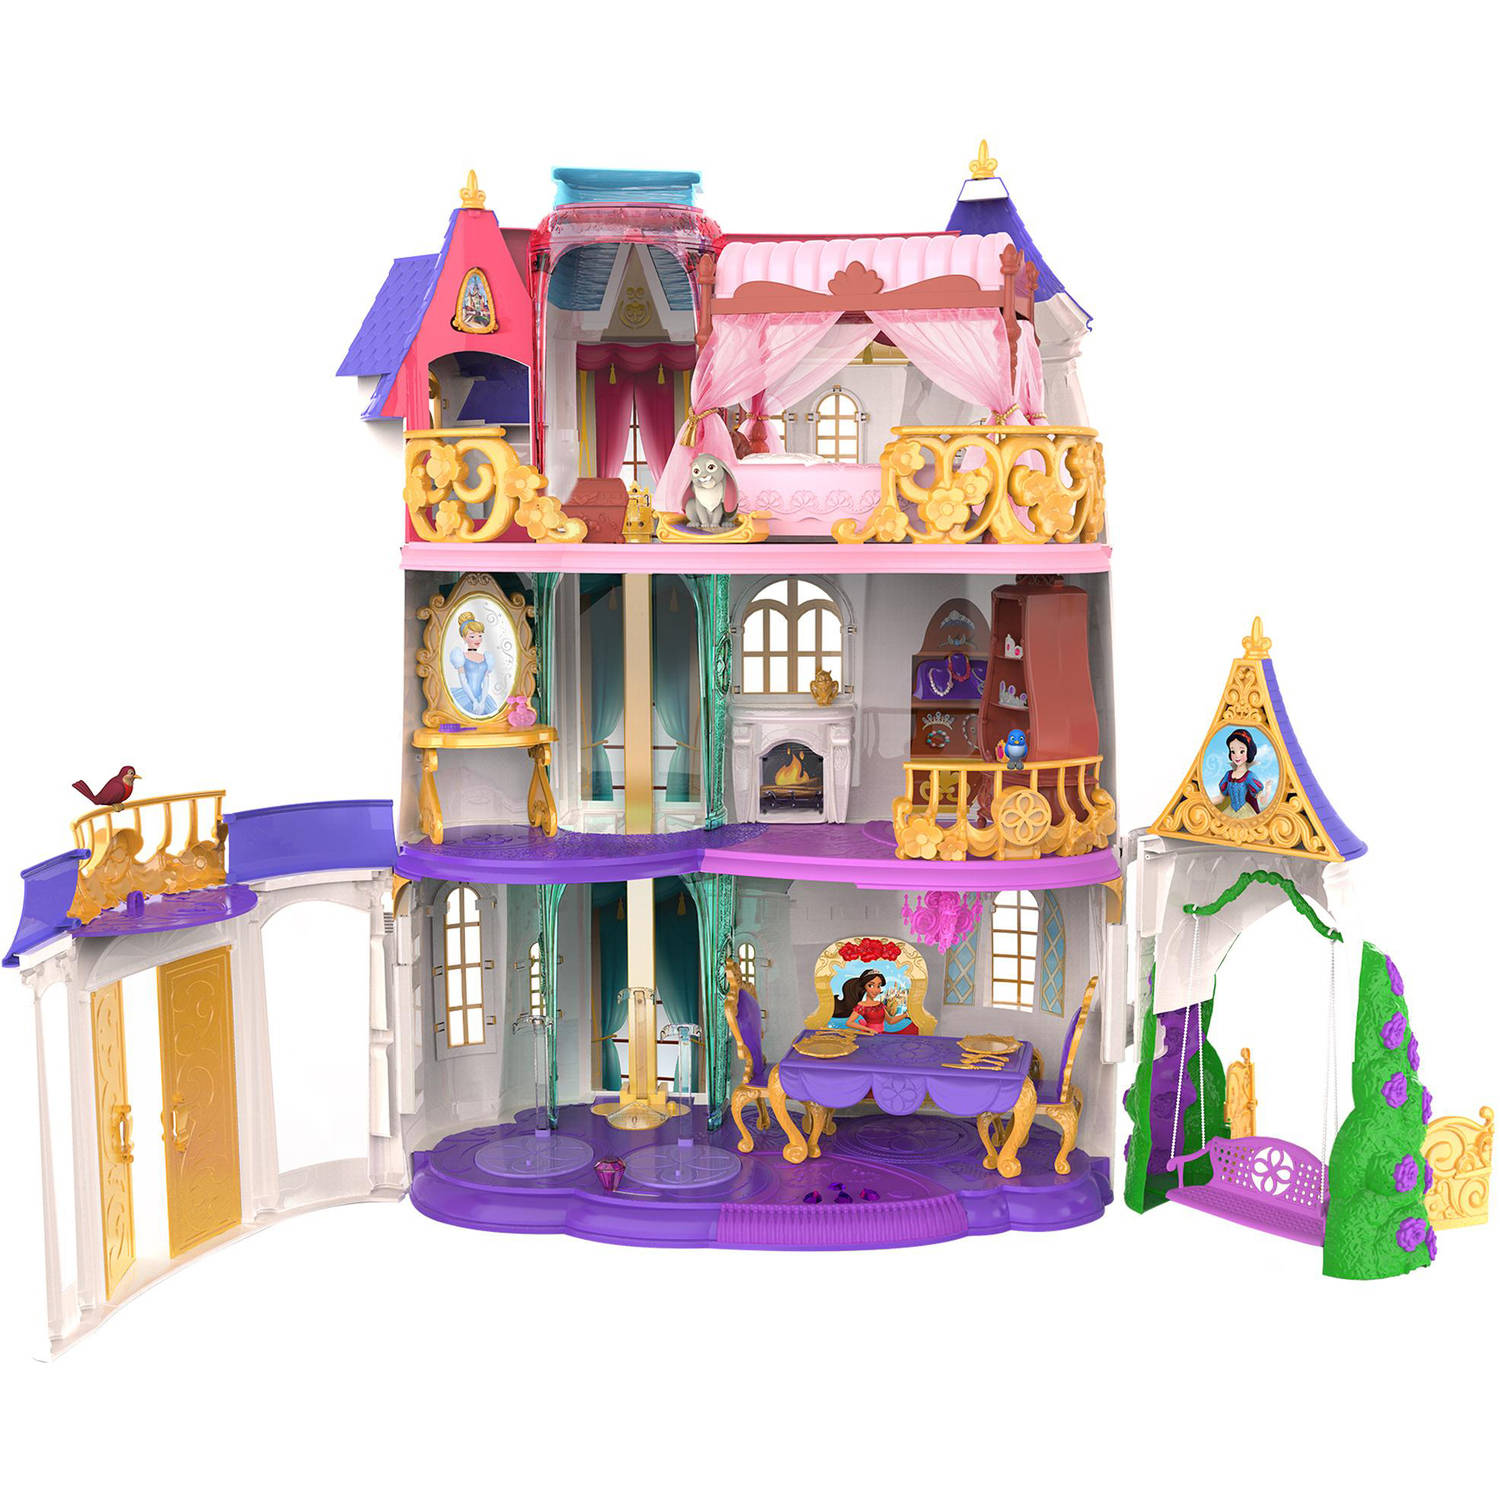 Toy Castle Playset Girls Kids Doll House Cartoon Character Princess